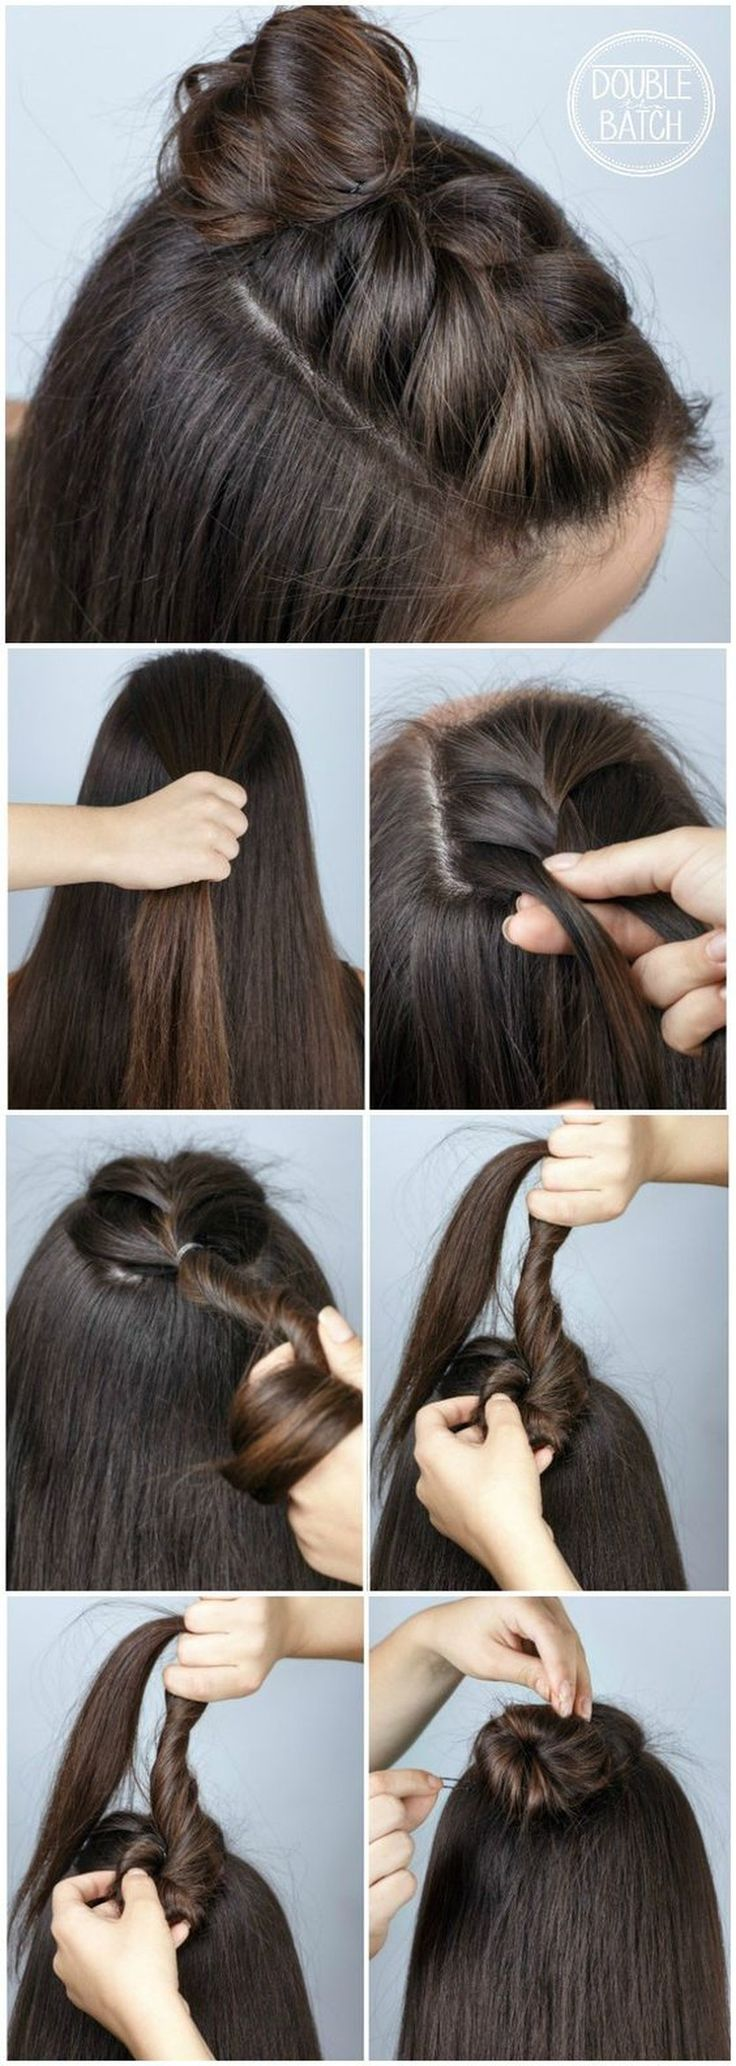 ❤️ Tutorial ❤️  Mohawk braid into top knot half-updo for medium to long hair Source by Sacha6090   …